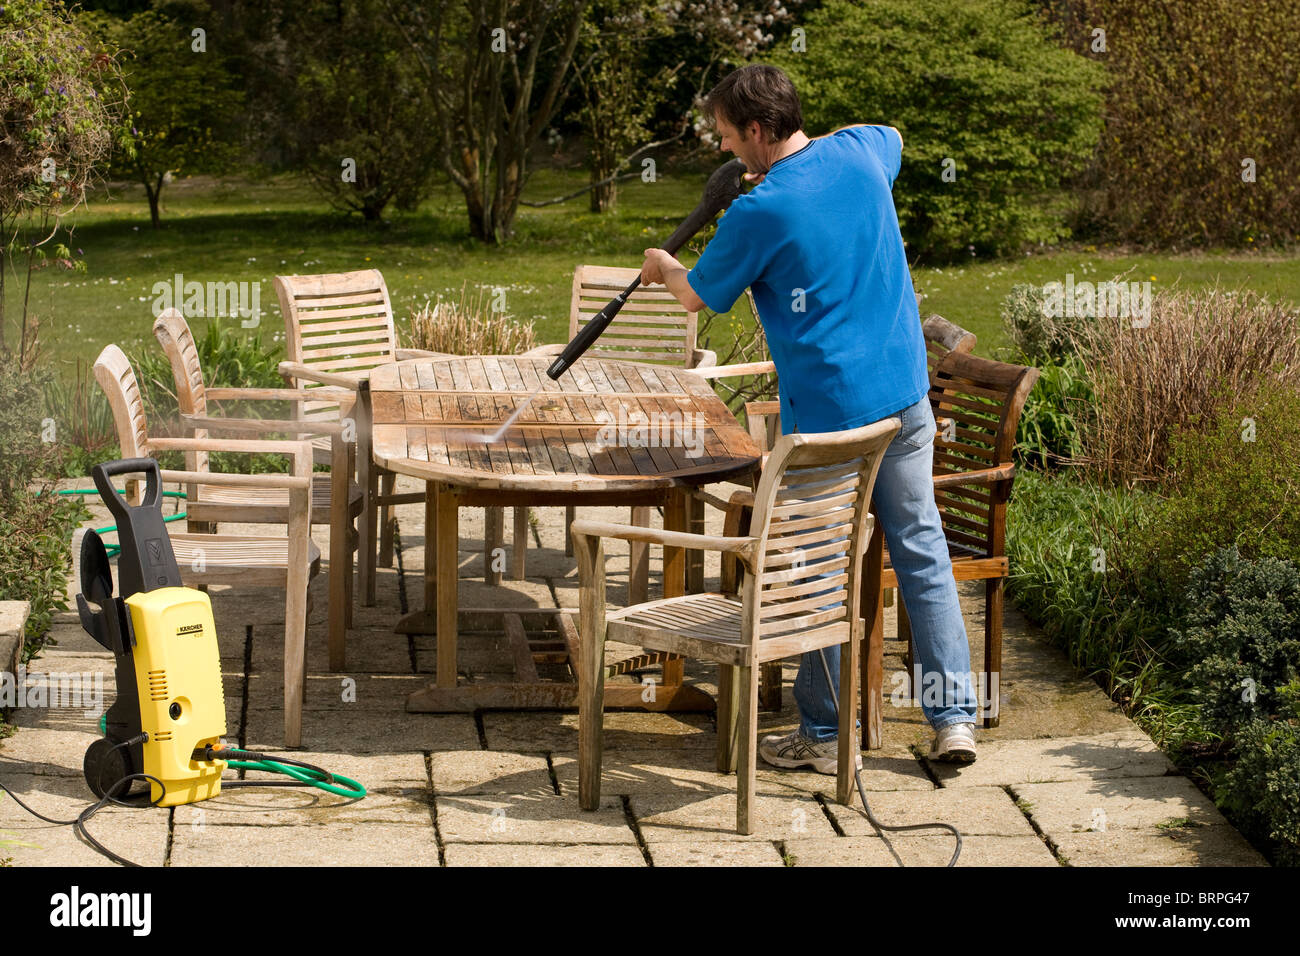 Man using a pressure washer to clean teak wood garden furniture. Man using a pressure washer to clean teak wood garden furniture